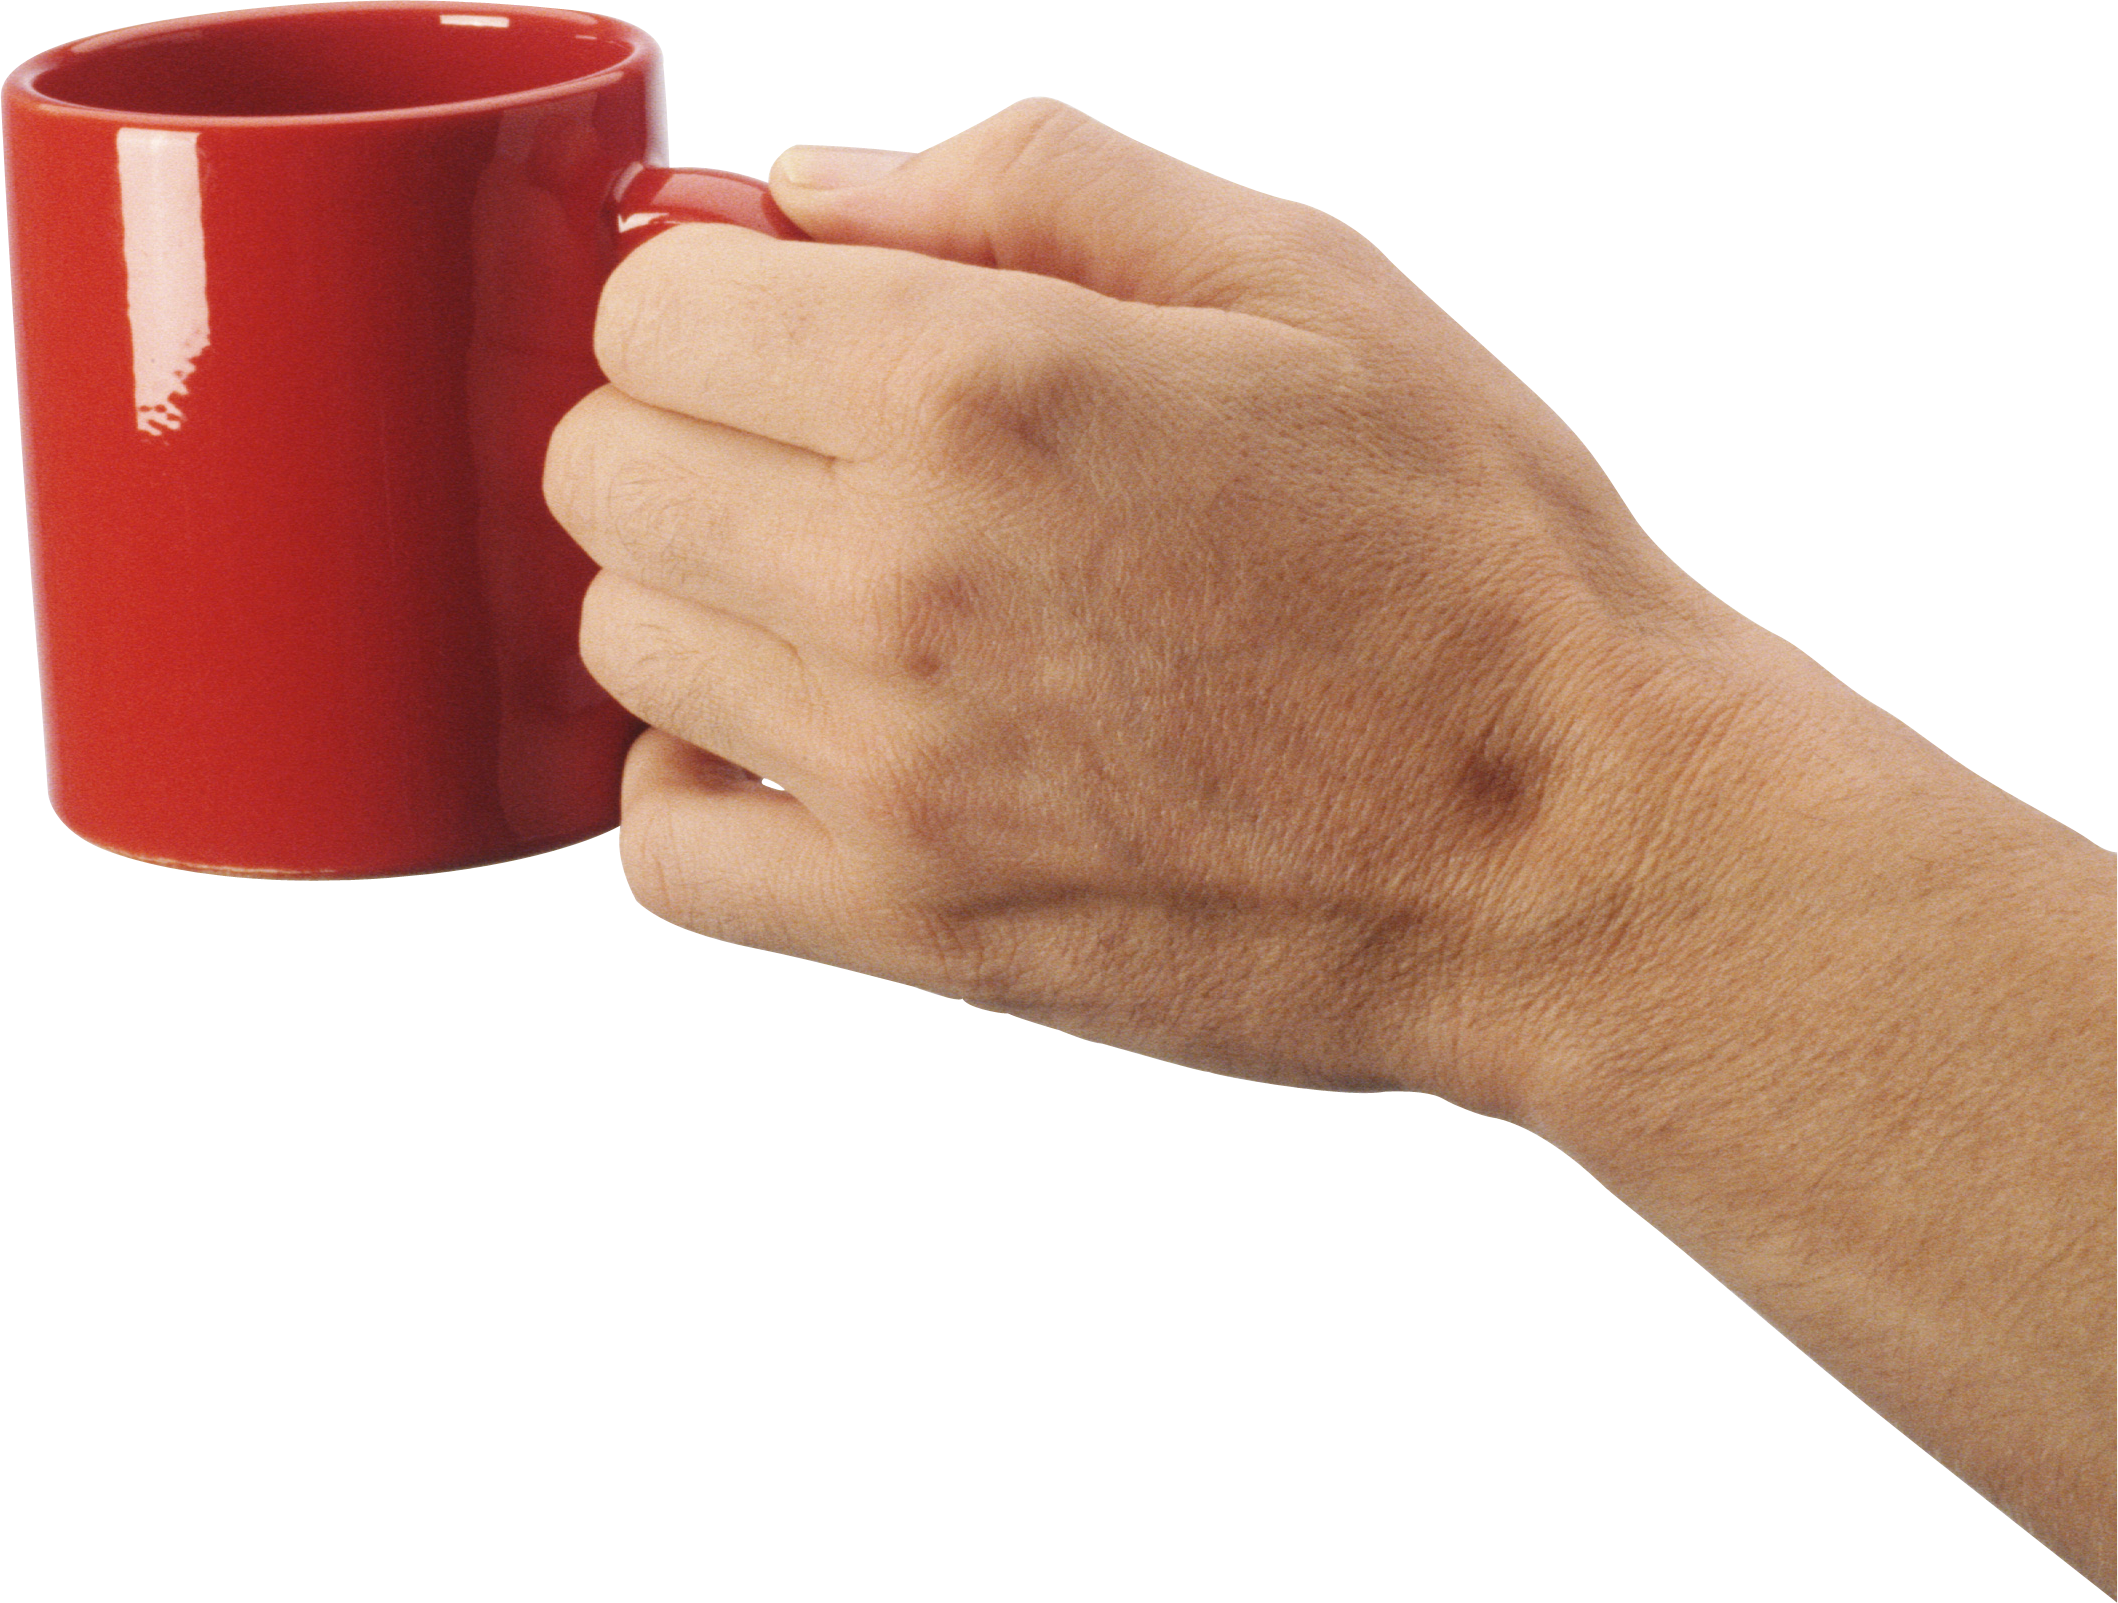 Hands holding the sun clipart vector svg royalty free library Hand Holding Cup | Isolated Stock Photo by noBACKS.com svg royalty free library